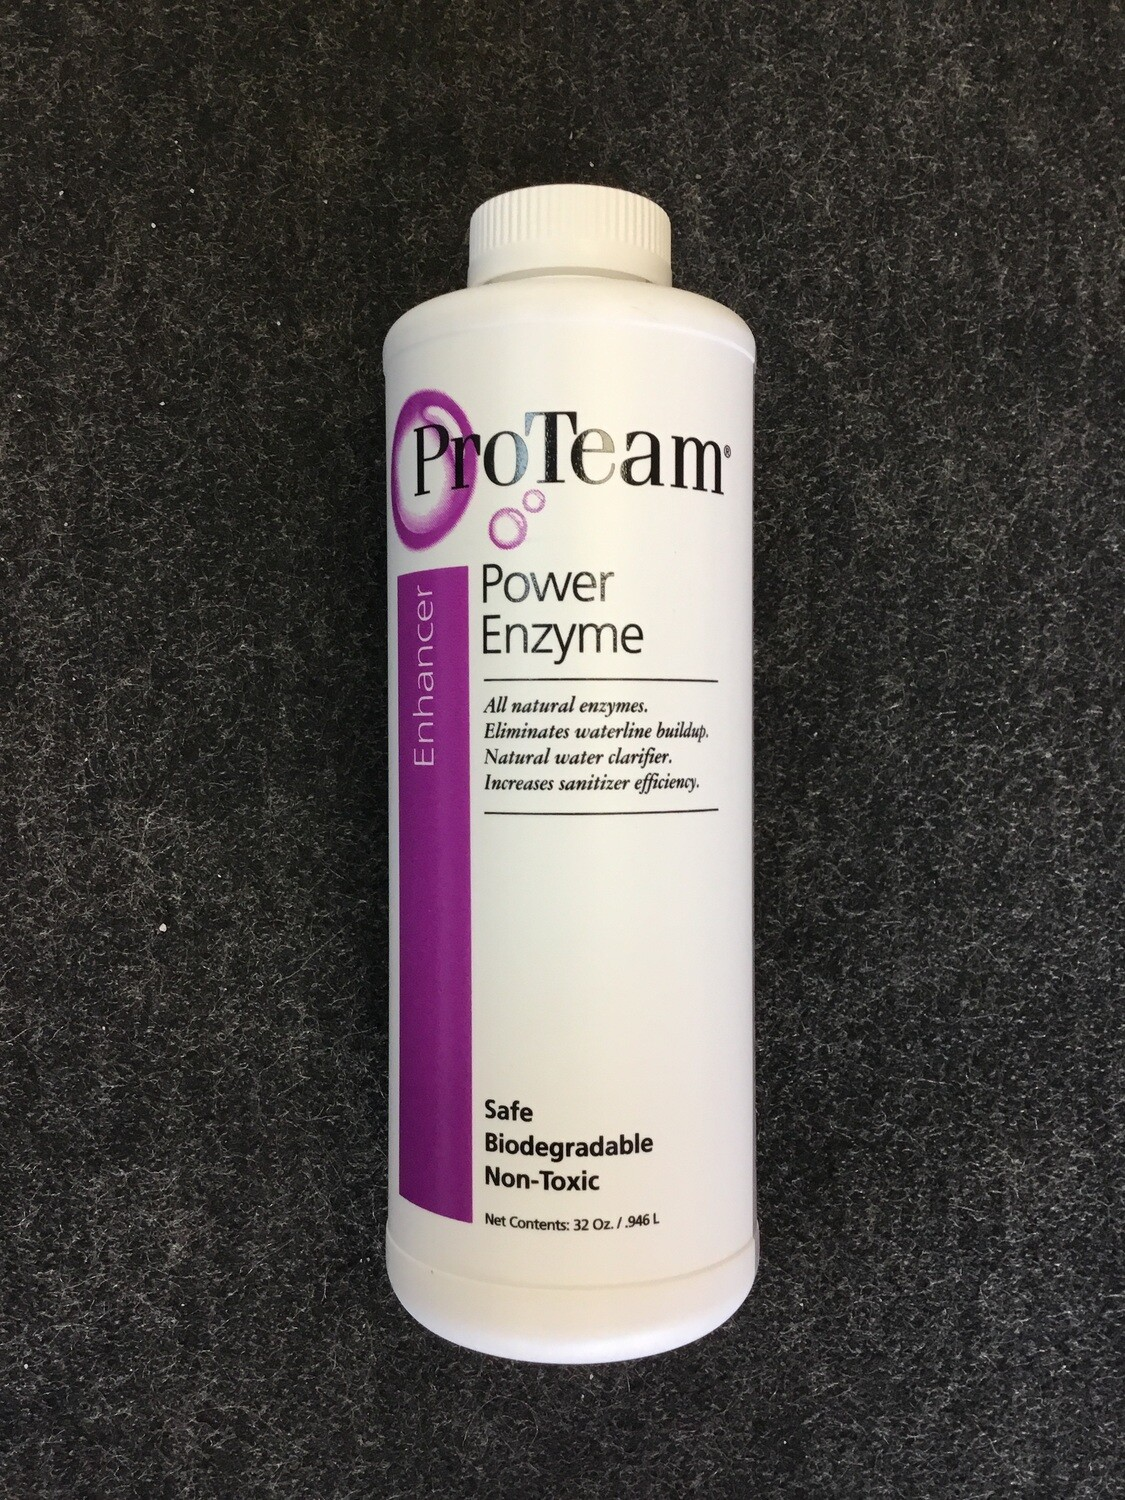 Proteam Power Enzyme